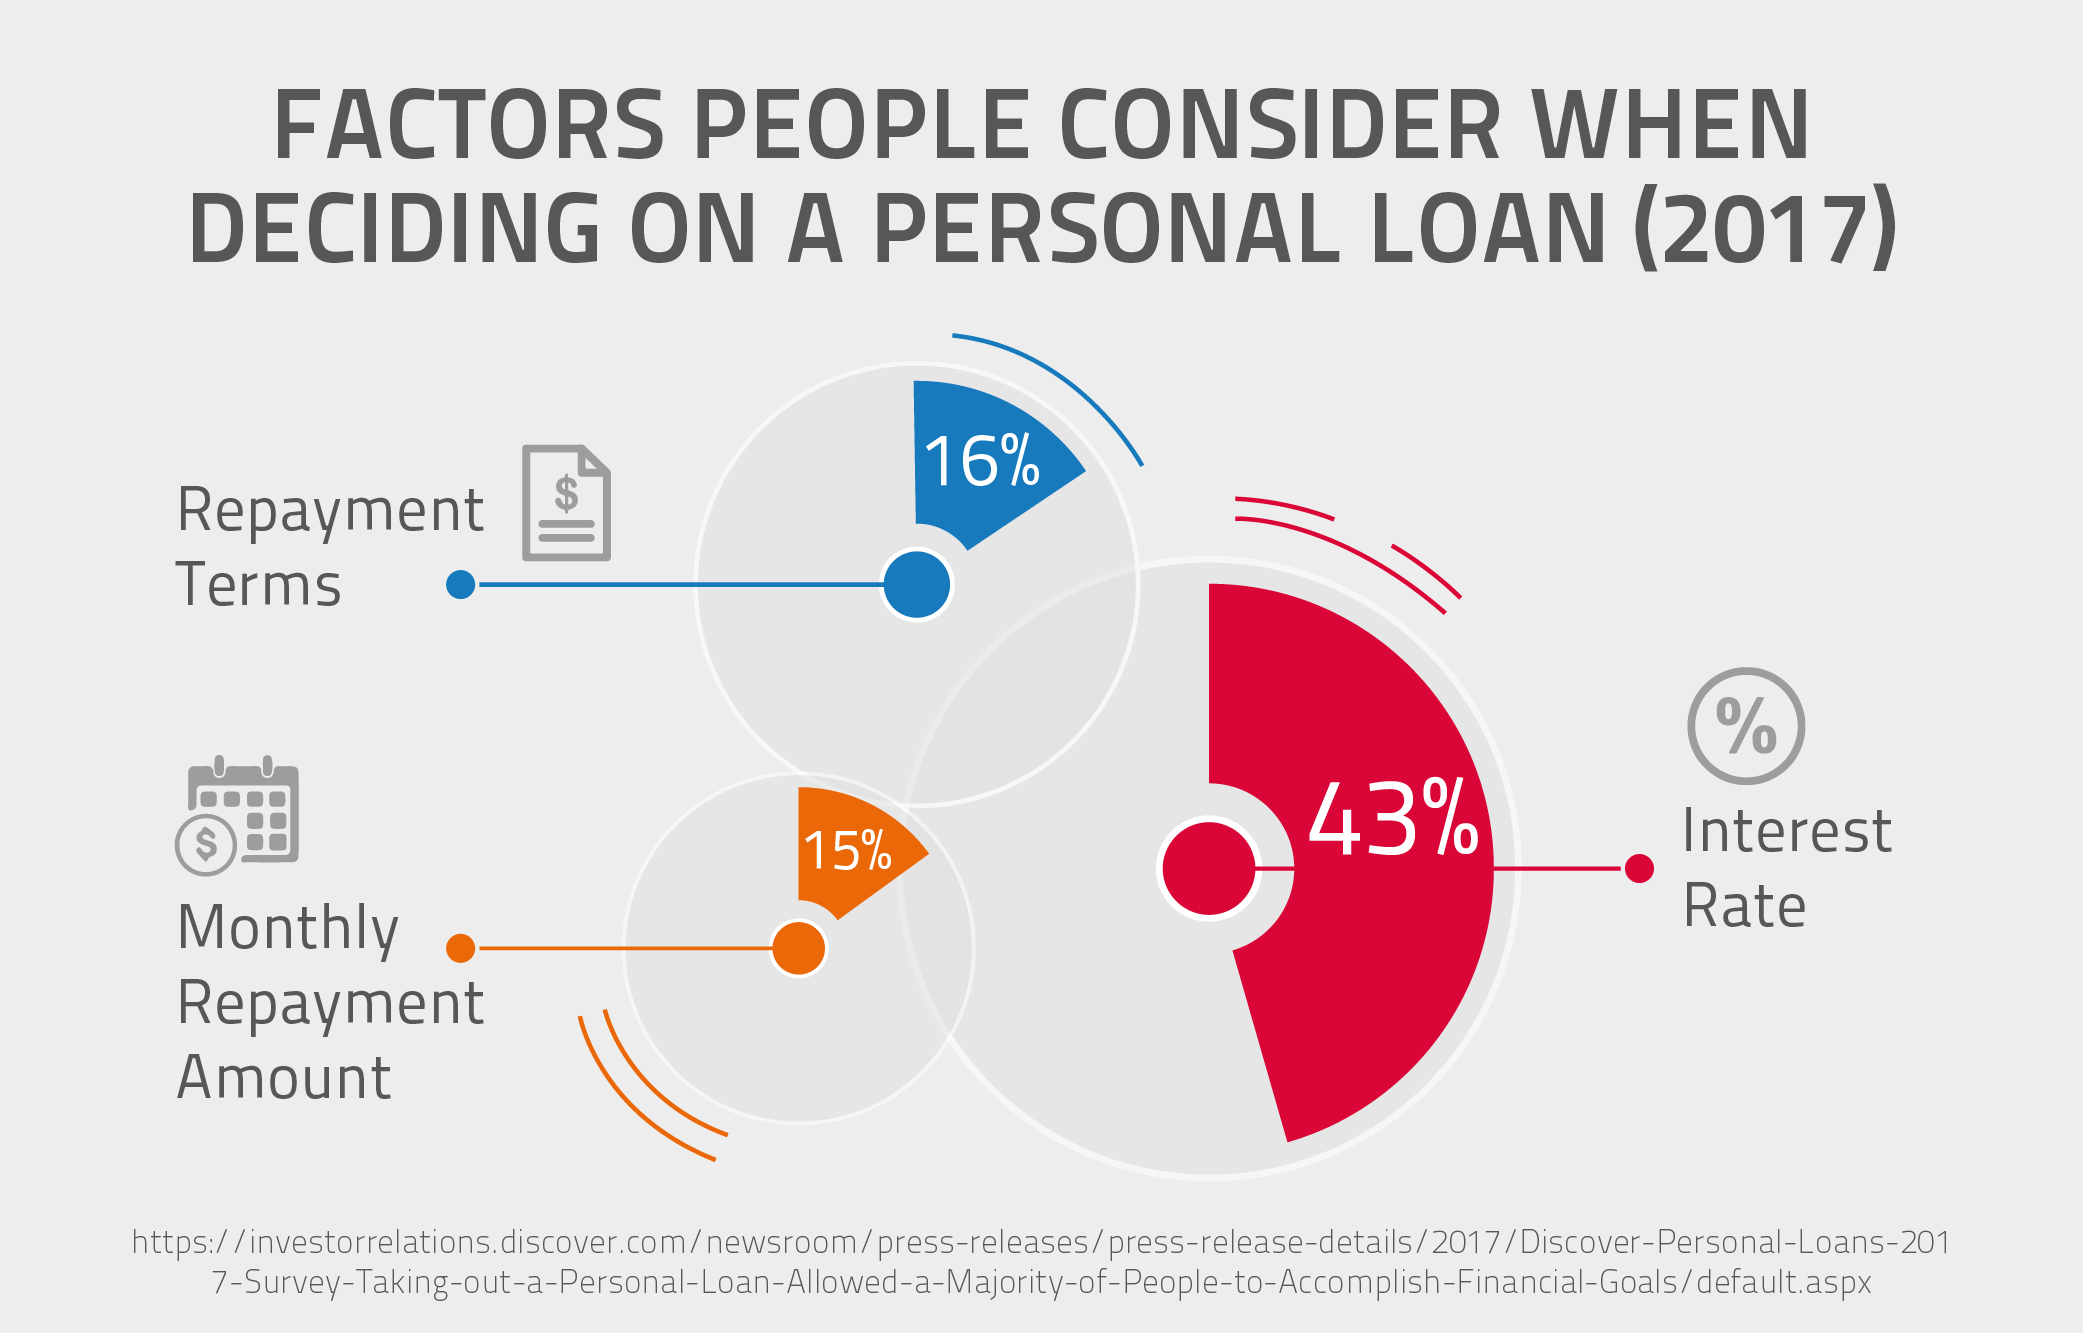 Factors People Consider When Deciding On a Personal Loan (2017)